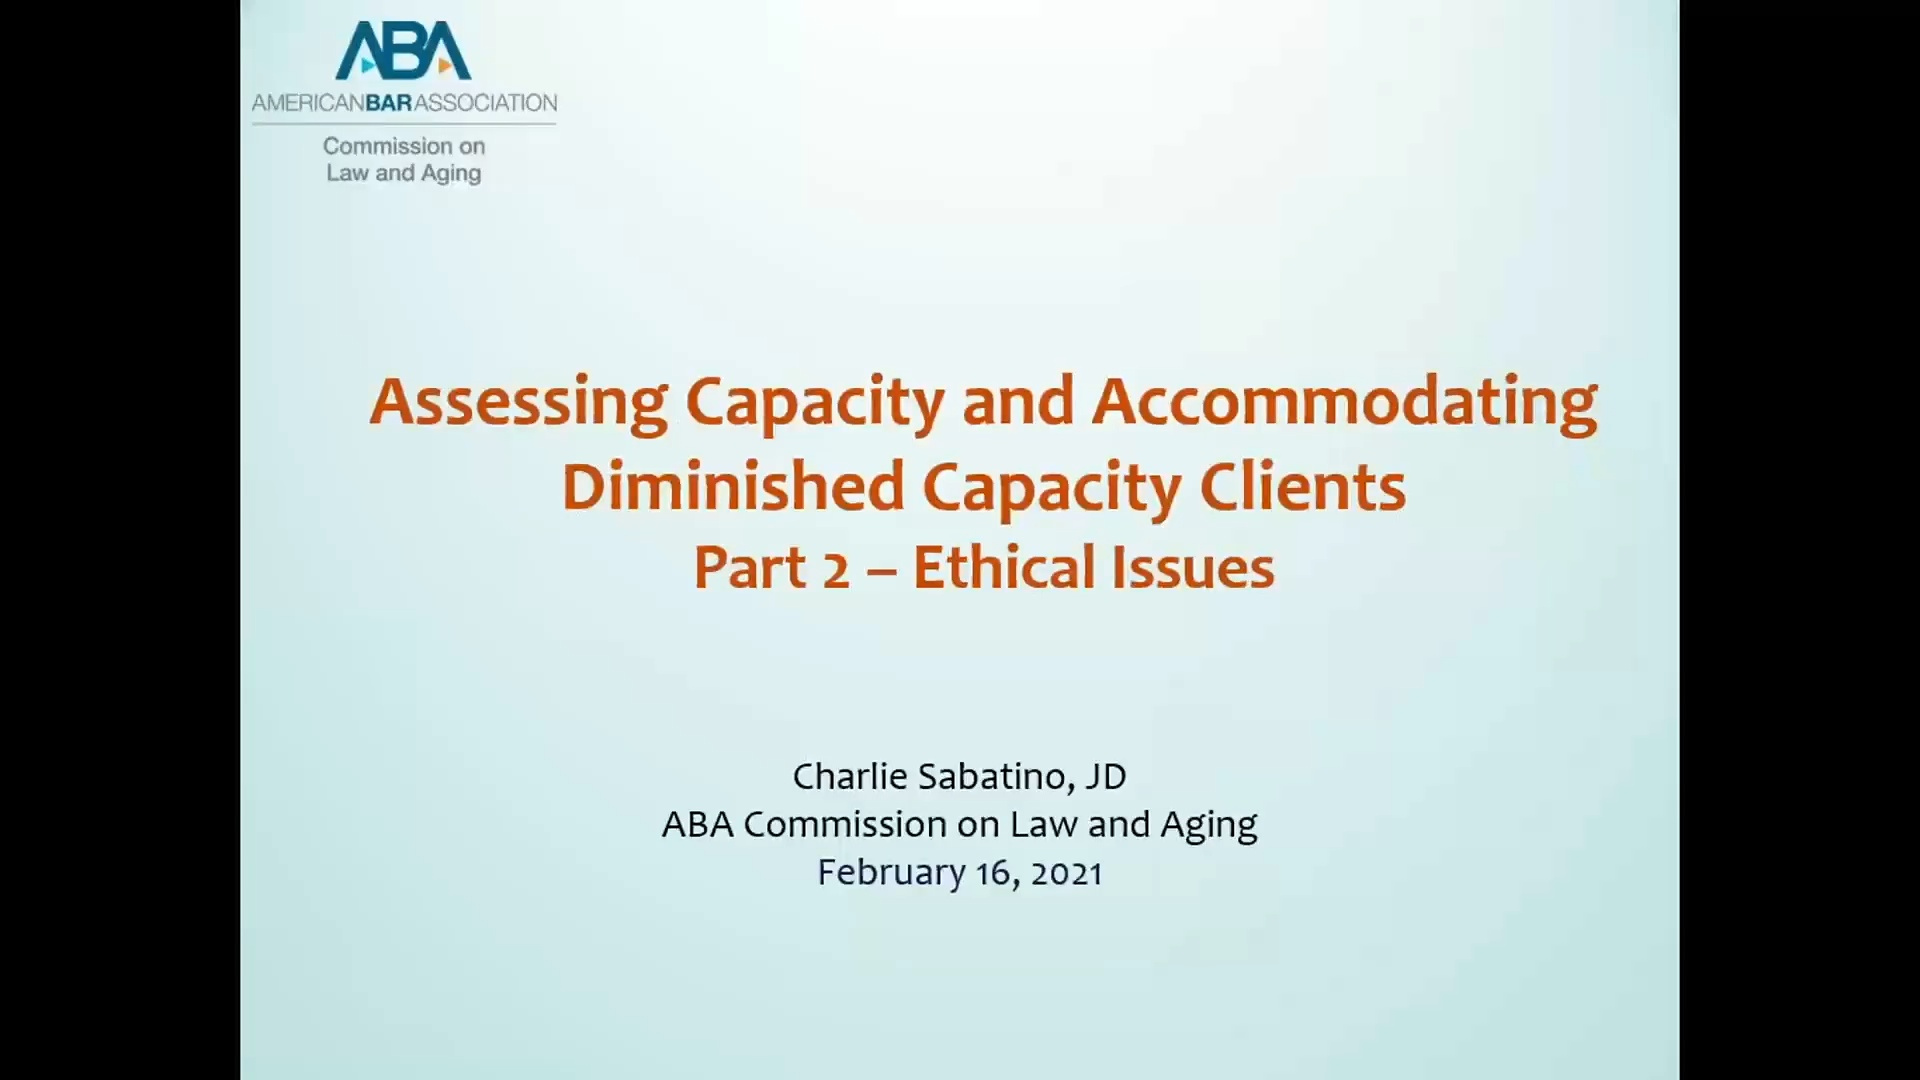 Assessing Capacity and Accommodating Diminished Capacity Clients (Part 2)